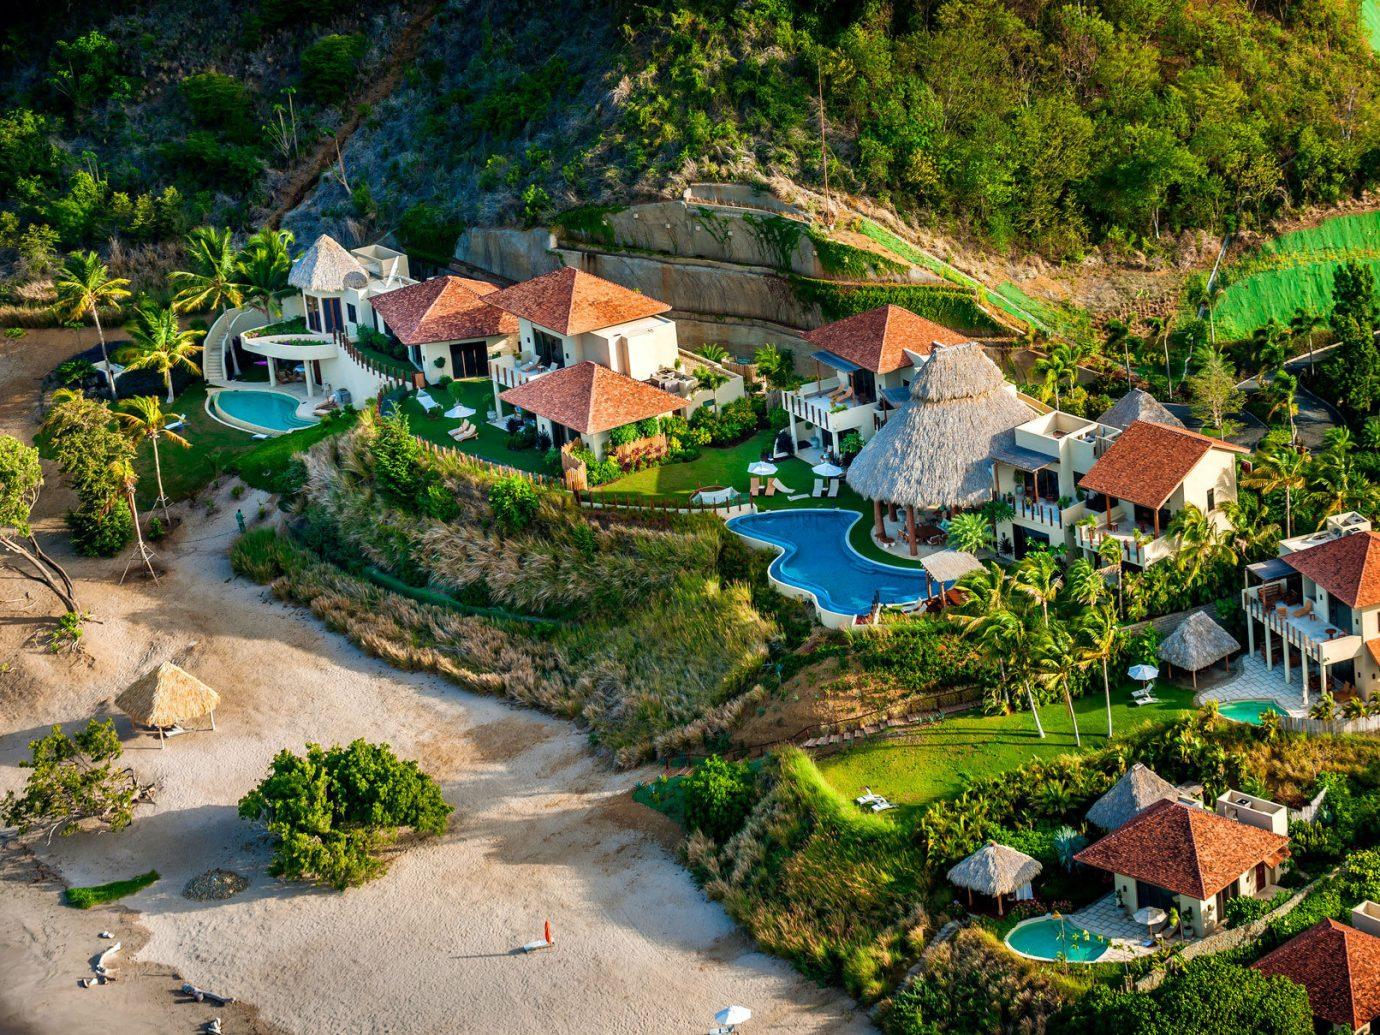 aerial Beach Buildings calm Elegant extravagant fancy isolation Luxury Pool regal remote serene sophisticated Trip Ideas Tropical white sands Winter tree outdoor geographical feature aerial photography Town Village human settlement residential area Nature River estate rural area landscape Resort flower Garden